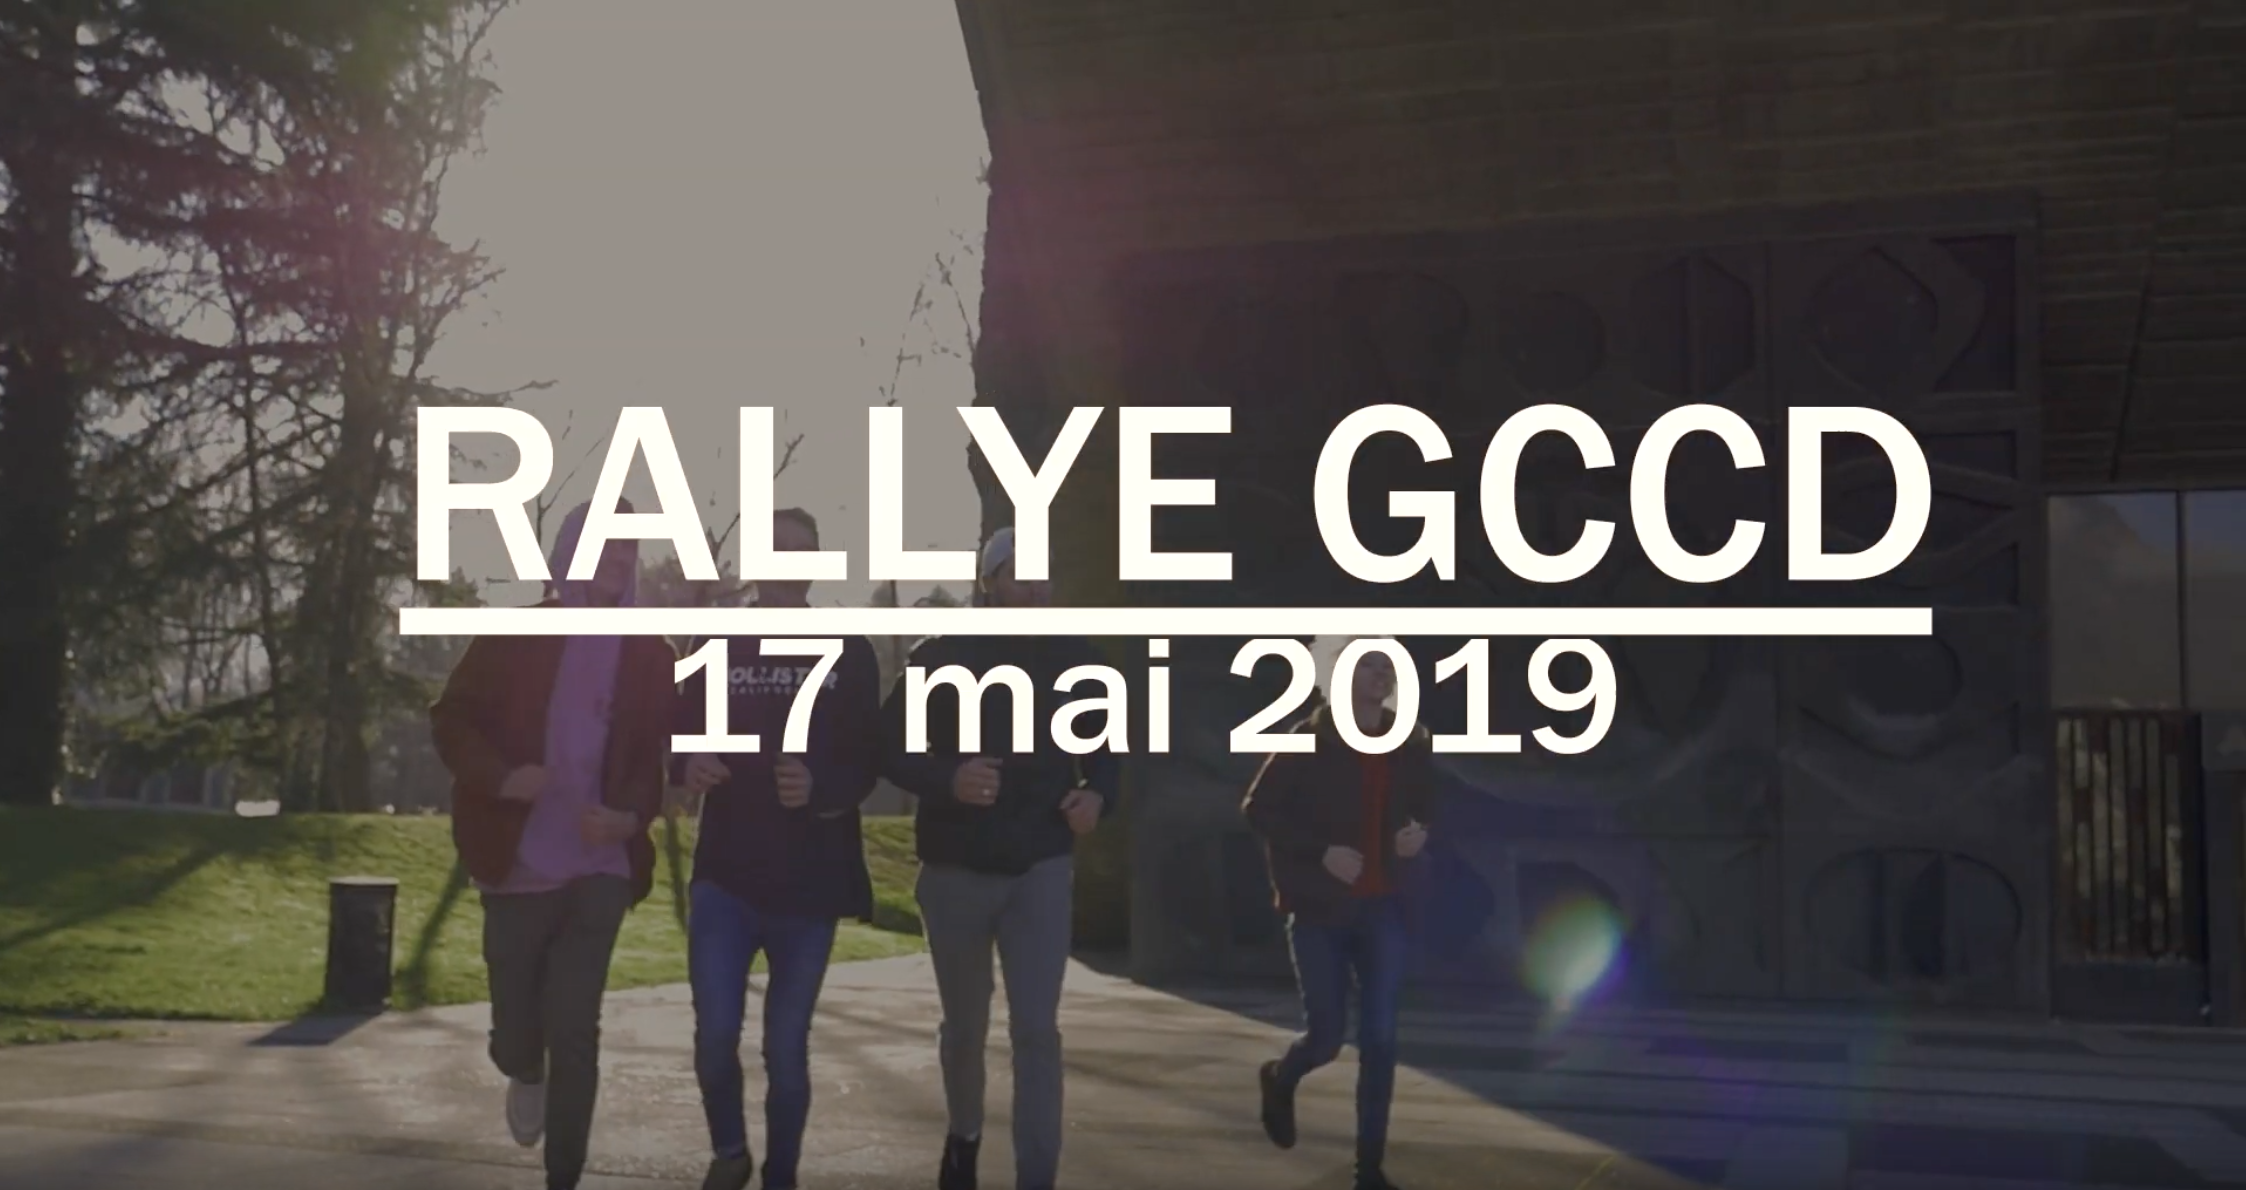 Rallye GCCD, Teaser de Communication